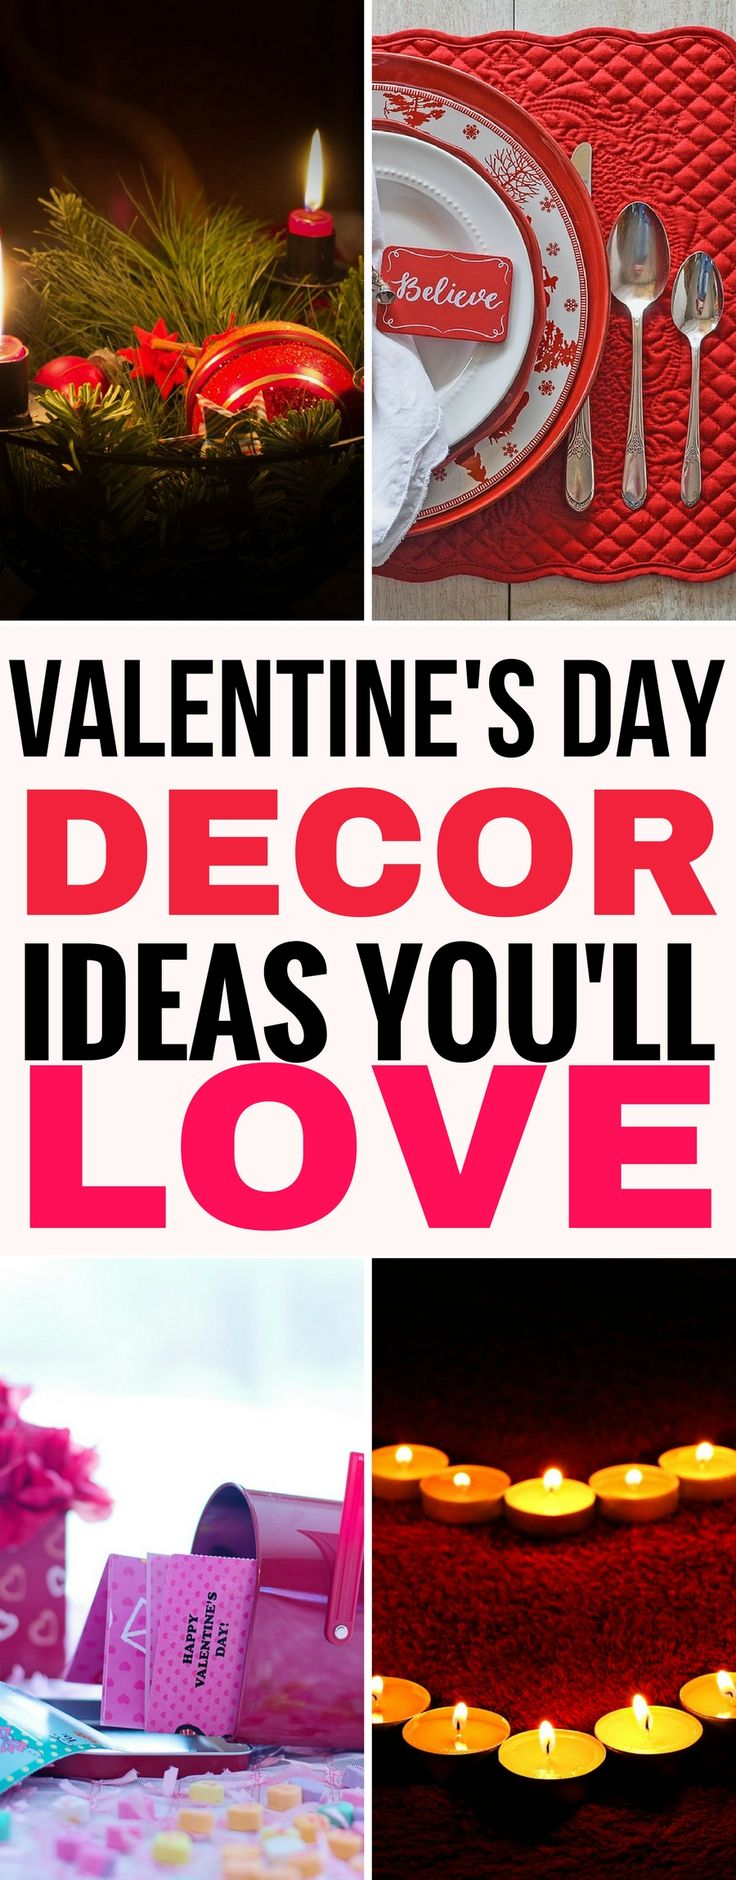 These 7 awesome Valentine's day decor ideas are THE BEST! I'm so glad I found these Vaentine's decor ideas. Now I can have elegant decor in my bedroom, for my table and some awesome wreath ideas for Valentine's. Pinning this for sure! #valentinesday #valentine #valentine #bedroom #table #tablesetting